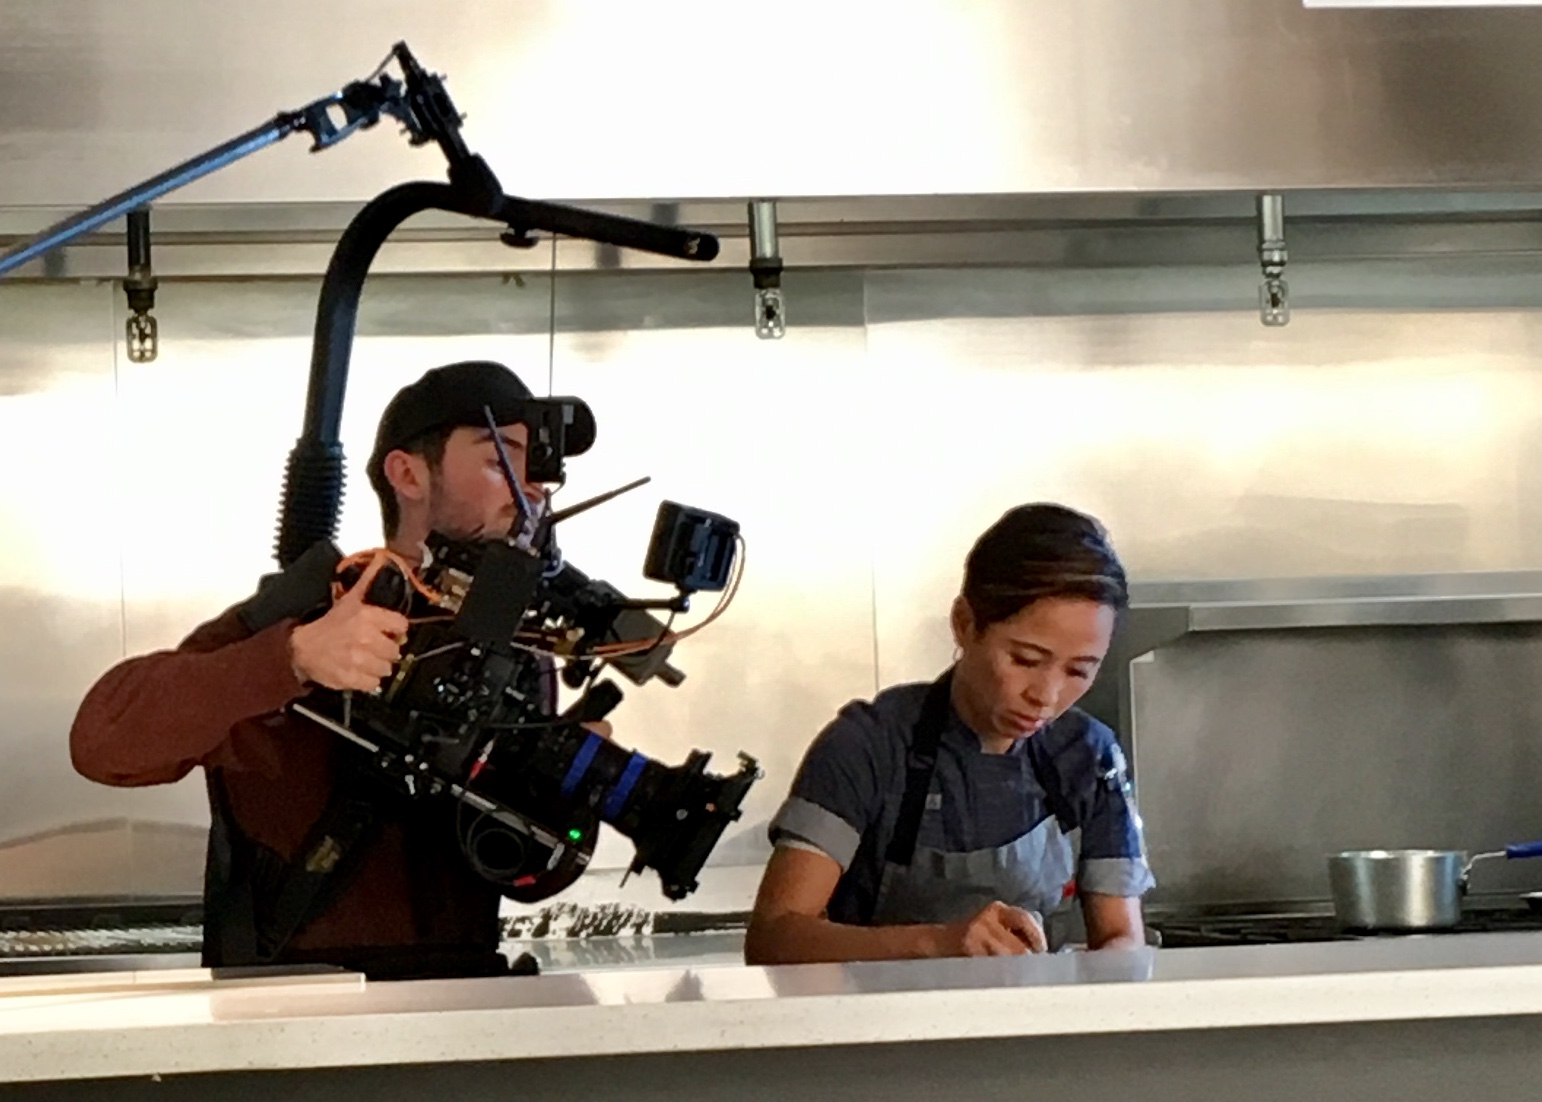 A man holding a large camera, filming Monica of Little Green Cyclo in a kitchen cooking.